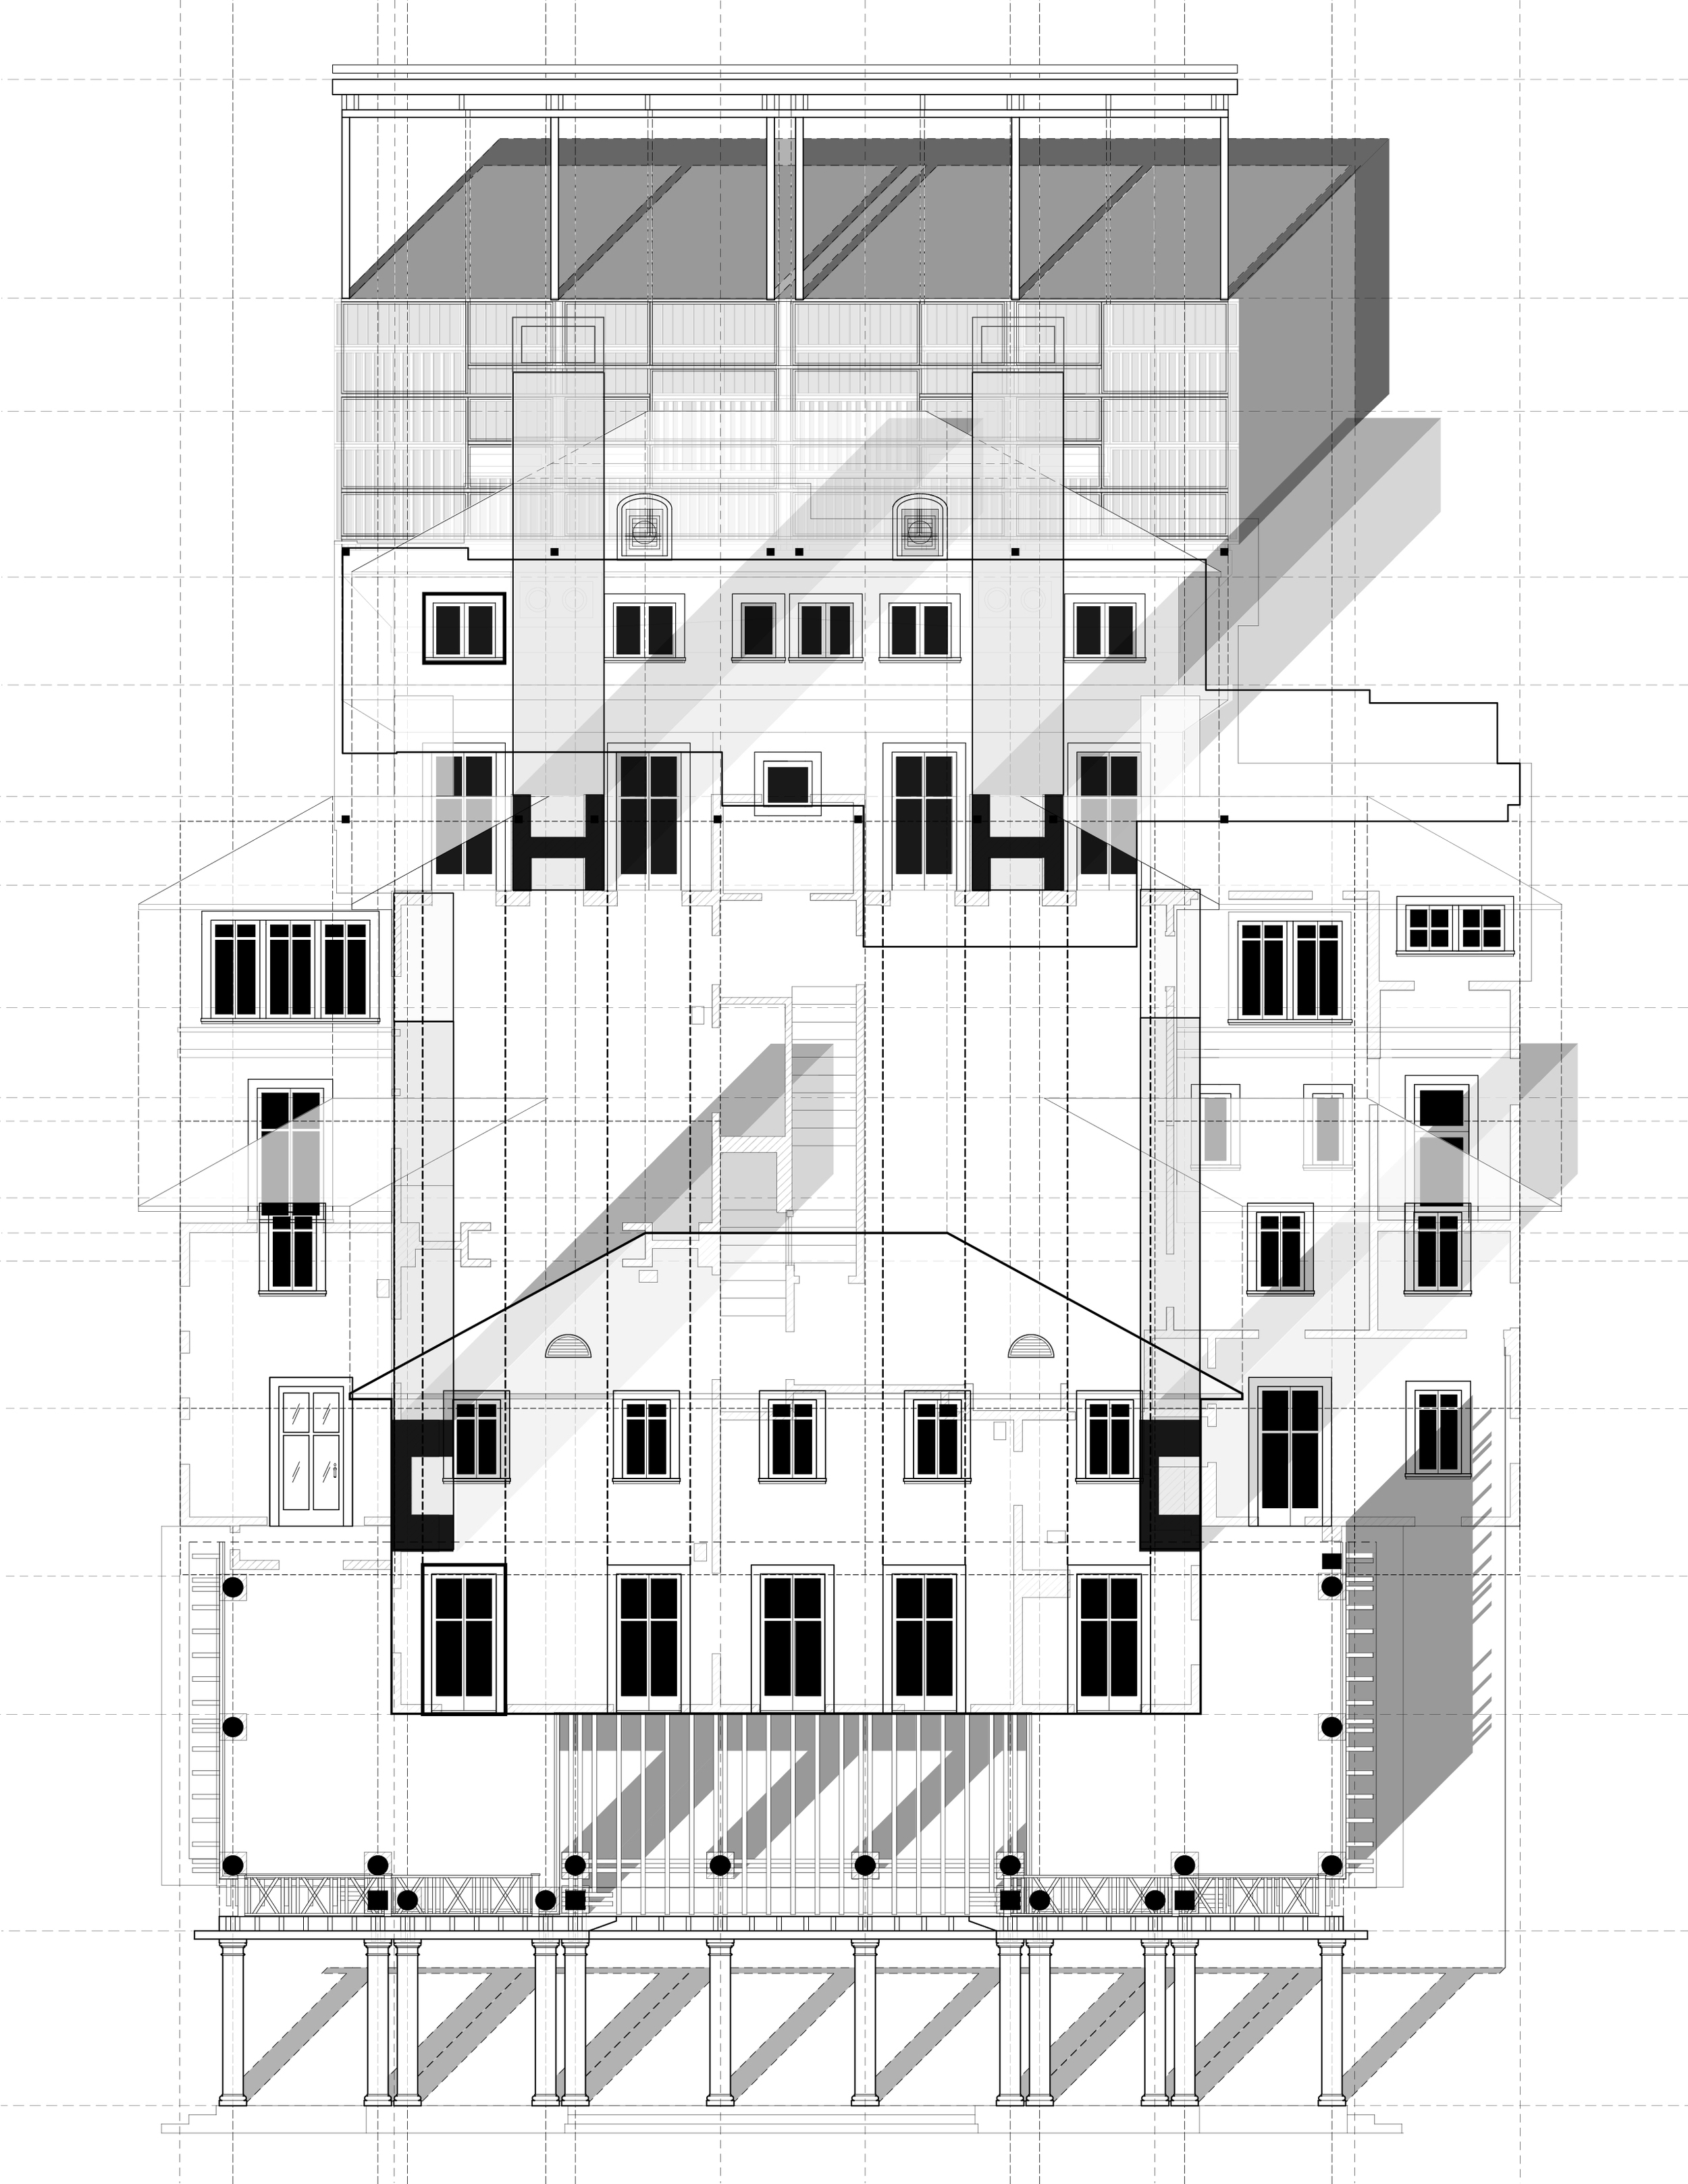 Concept Drawing_Unfolded Elevations-01.jpg